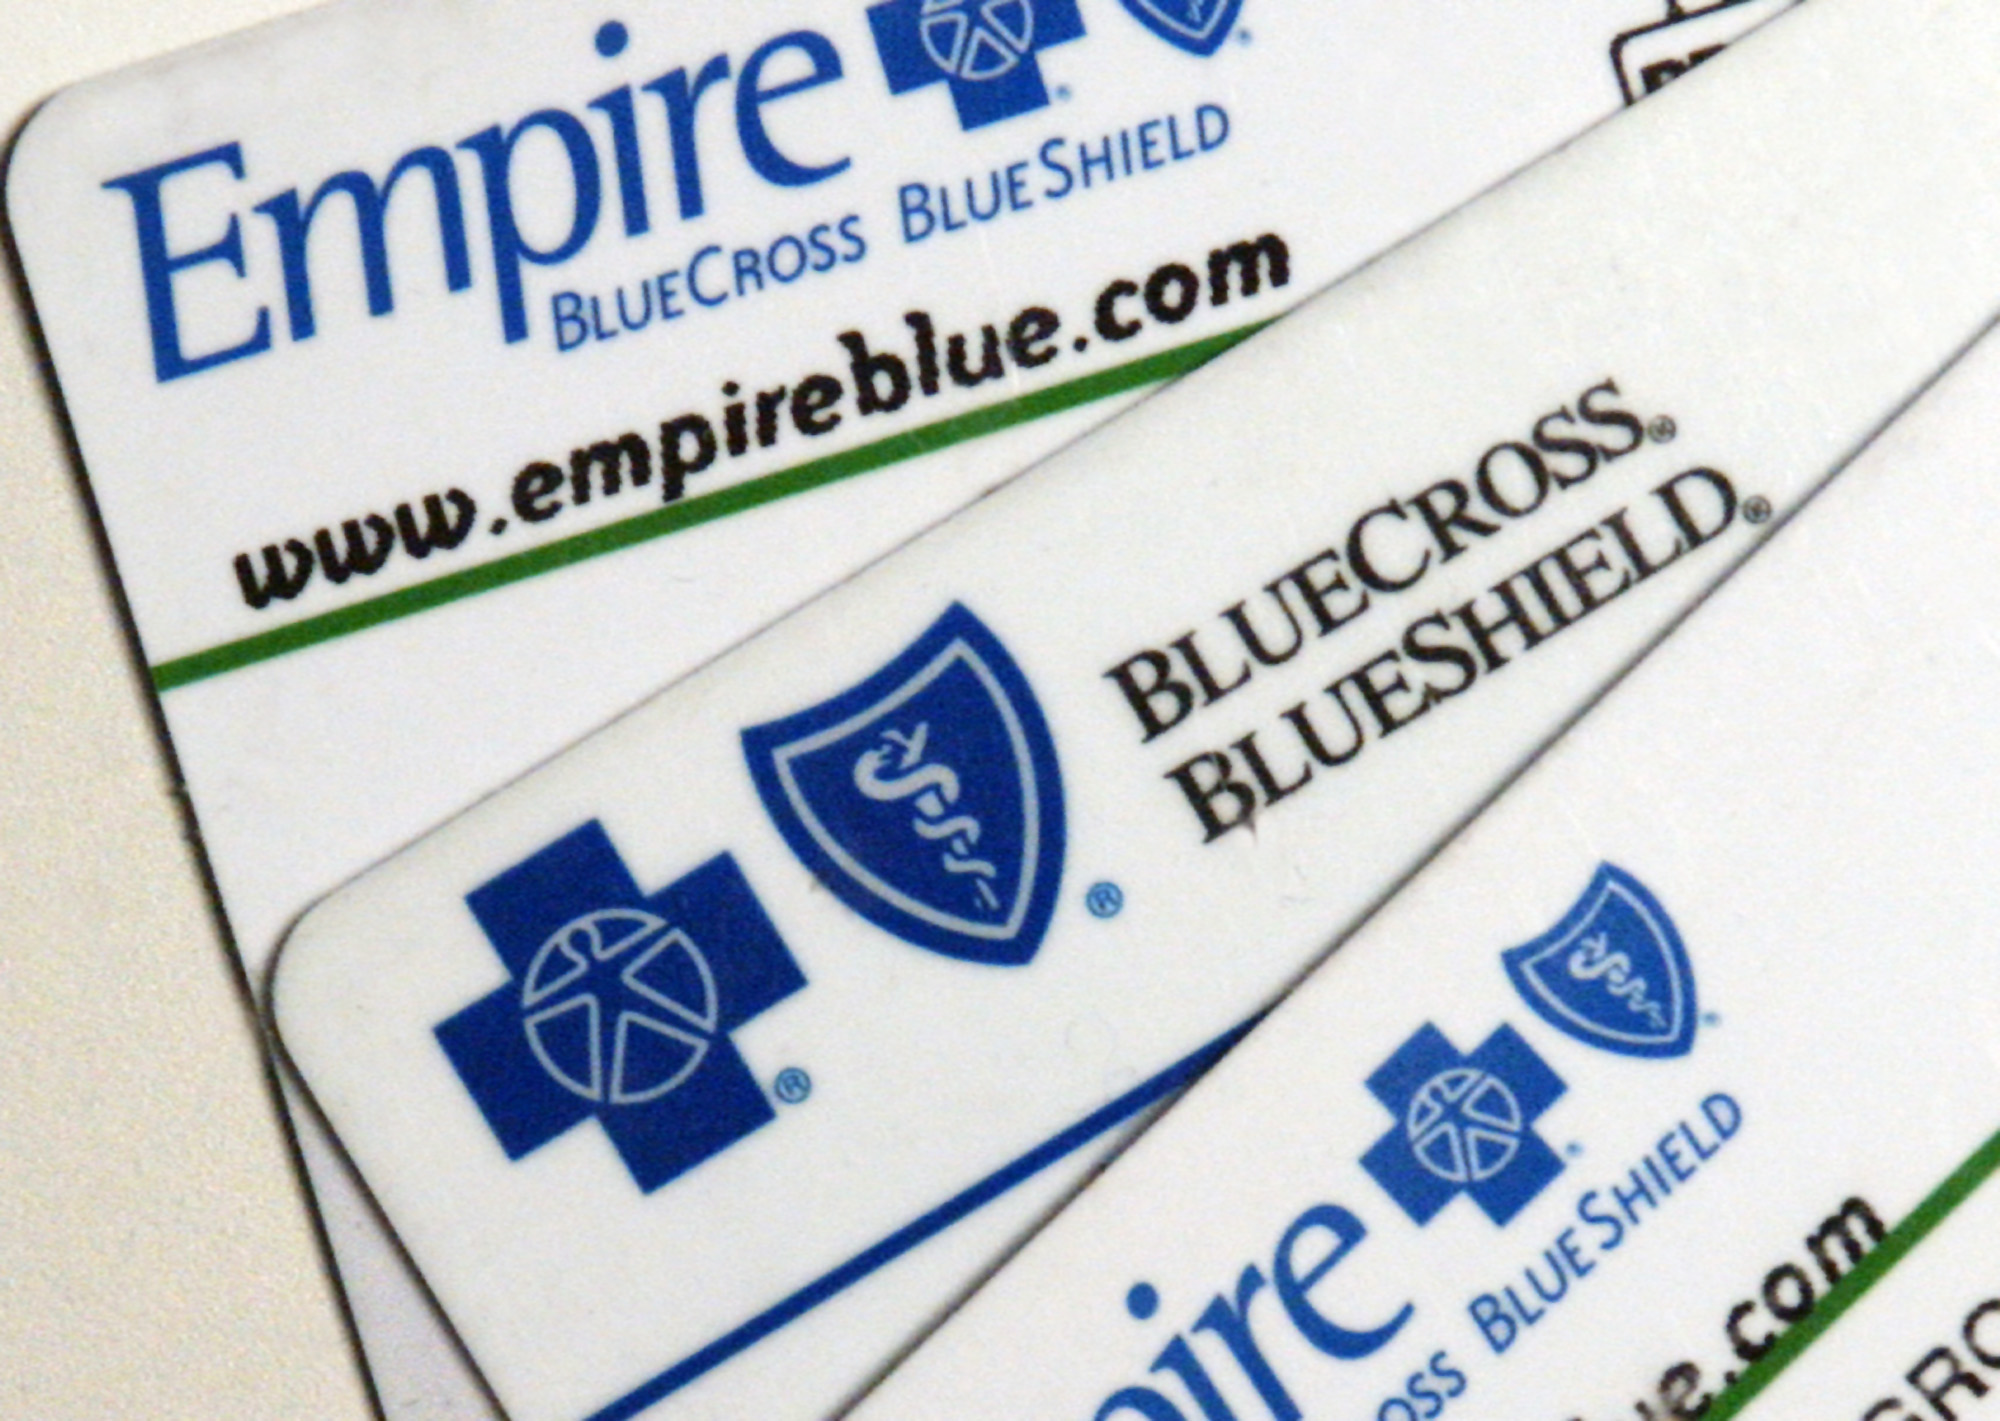 Empire Blue Cross Blue Shield health insurance card